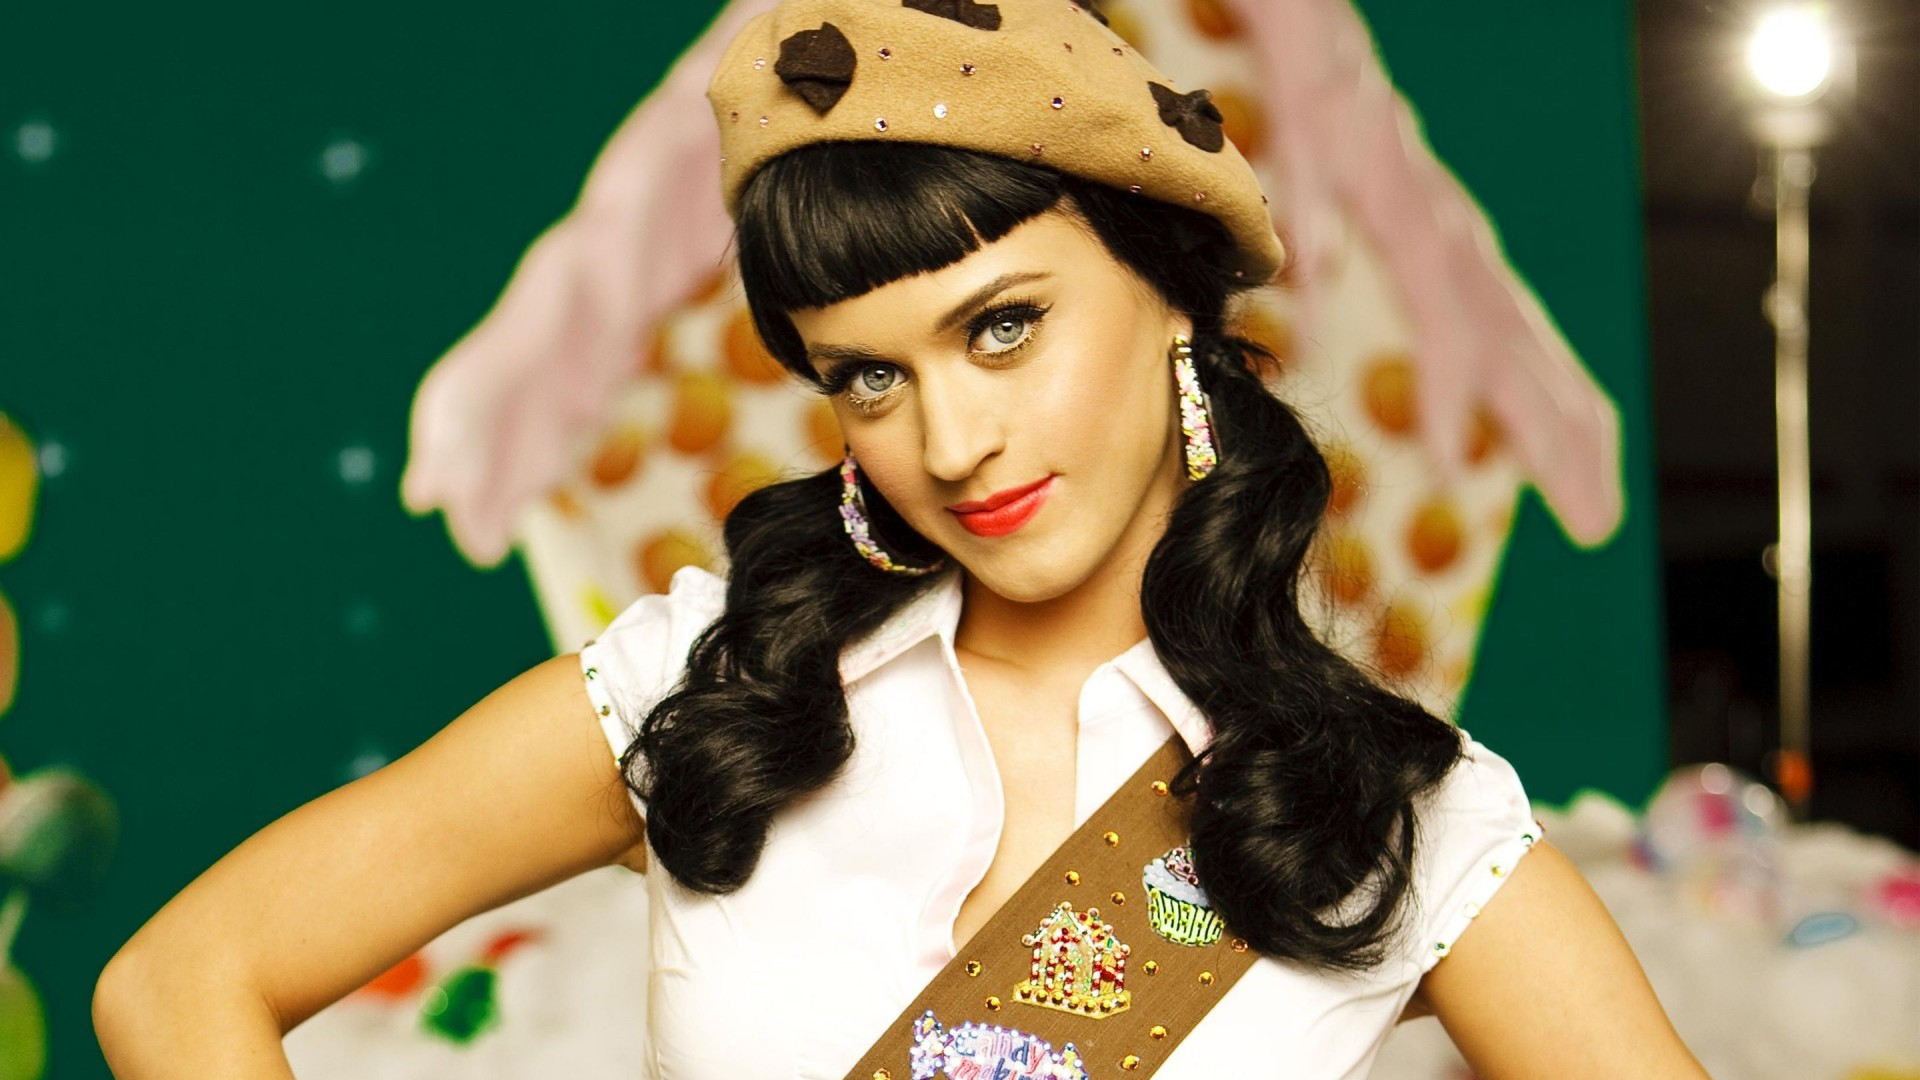 Cute Wallpaper Hd 1080p Free Download Lovely Katy Perry Picture Wallpaper High Definition